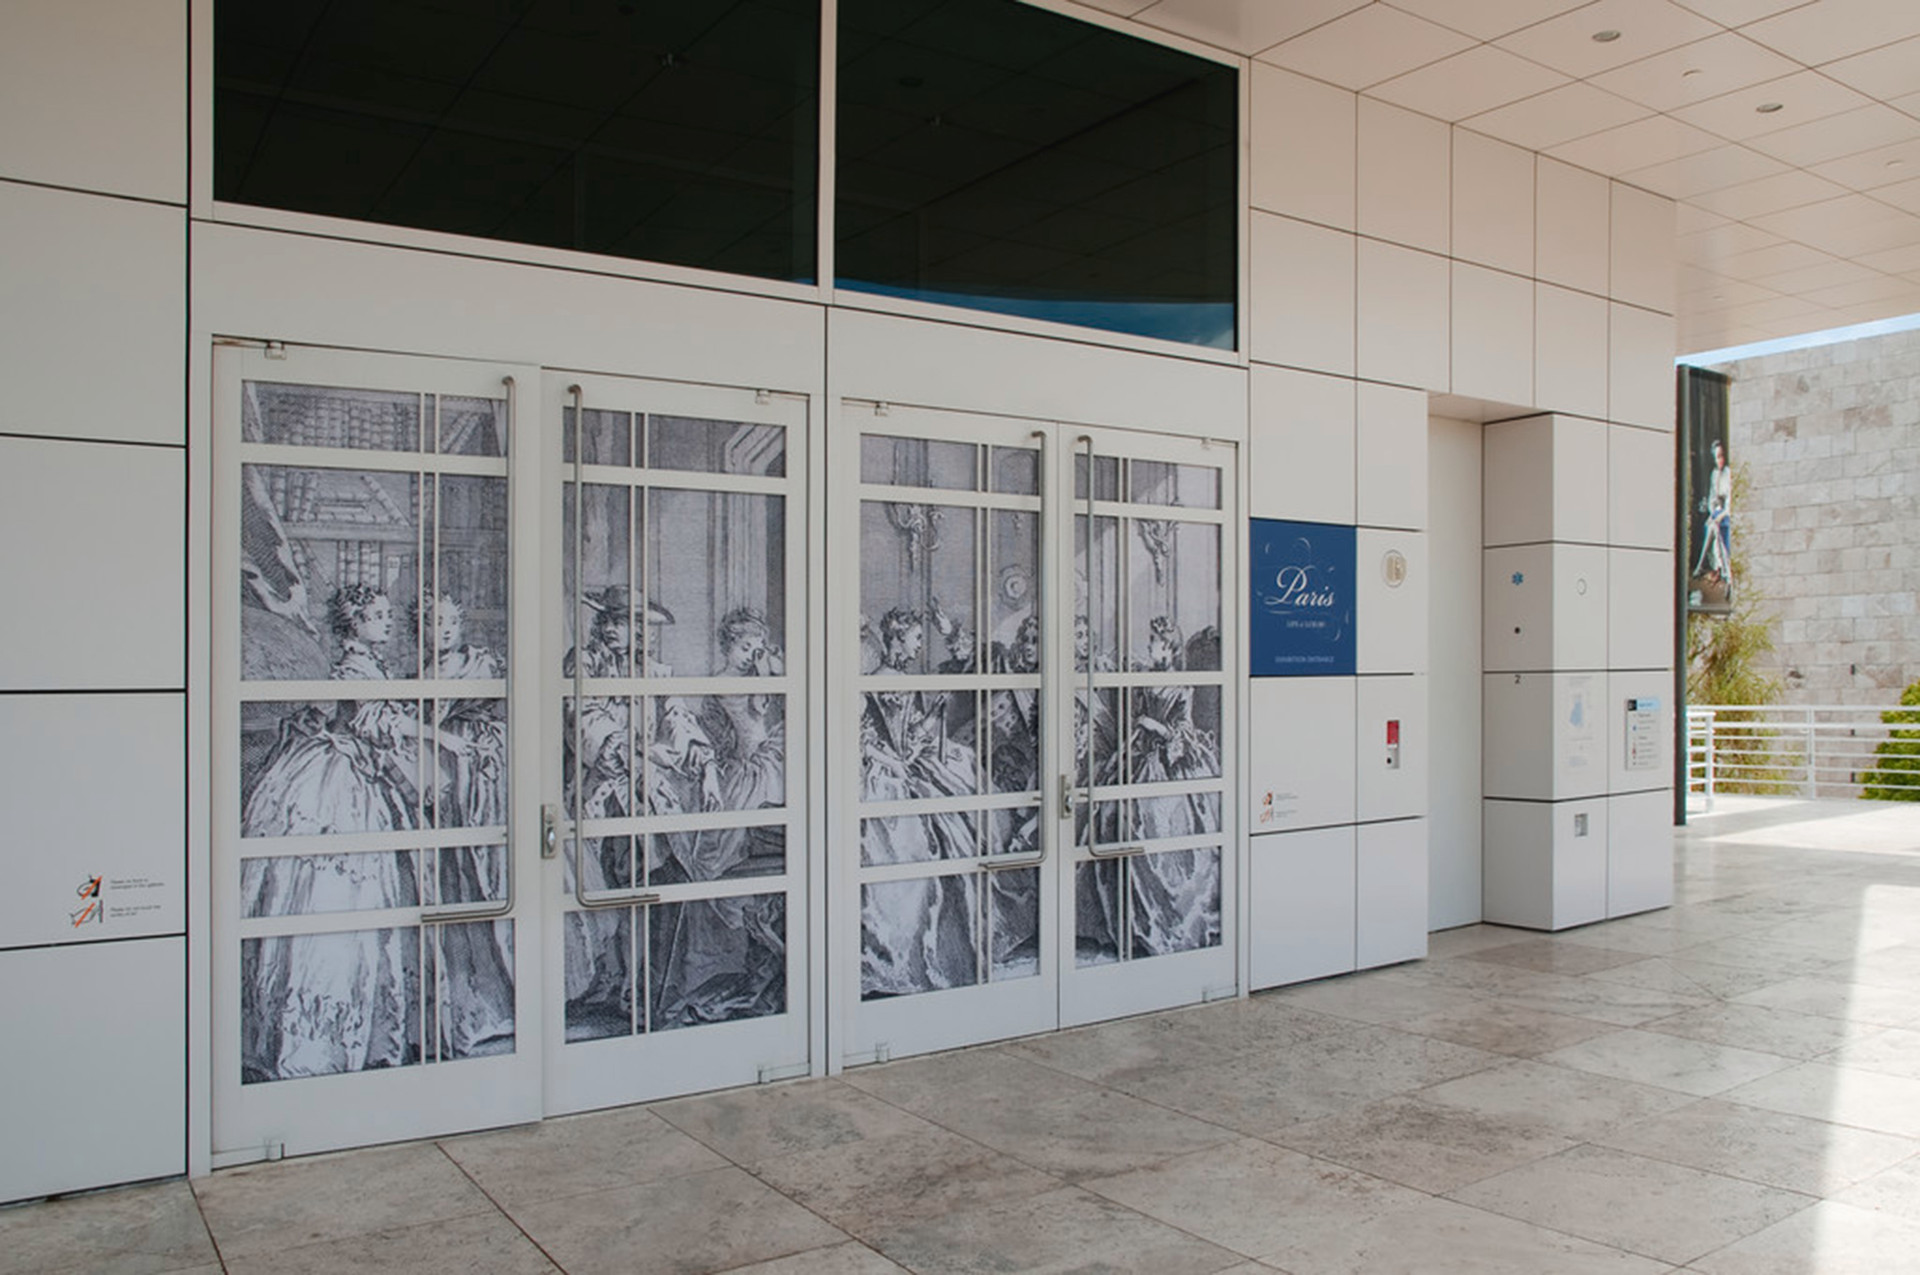 Entrance to the Exhibition Pavilion galleries featured a historical print from the exhibition.